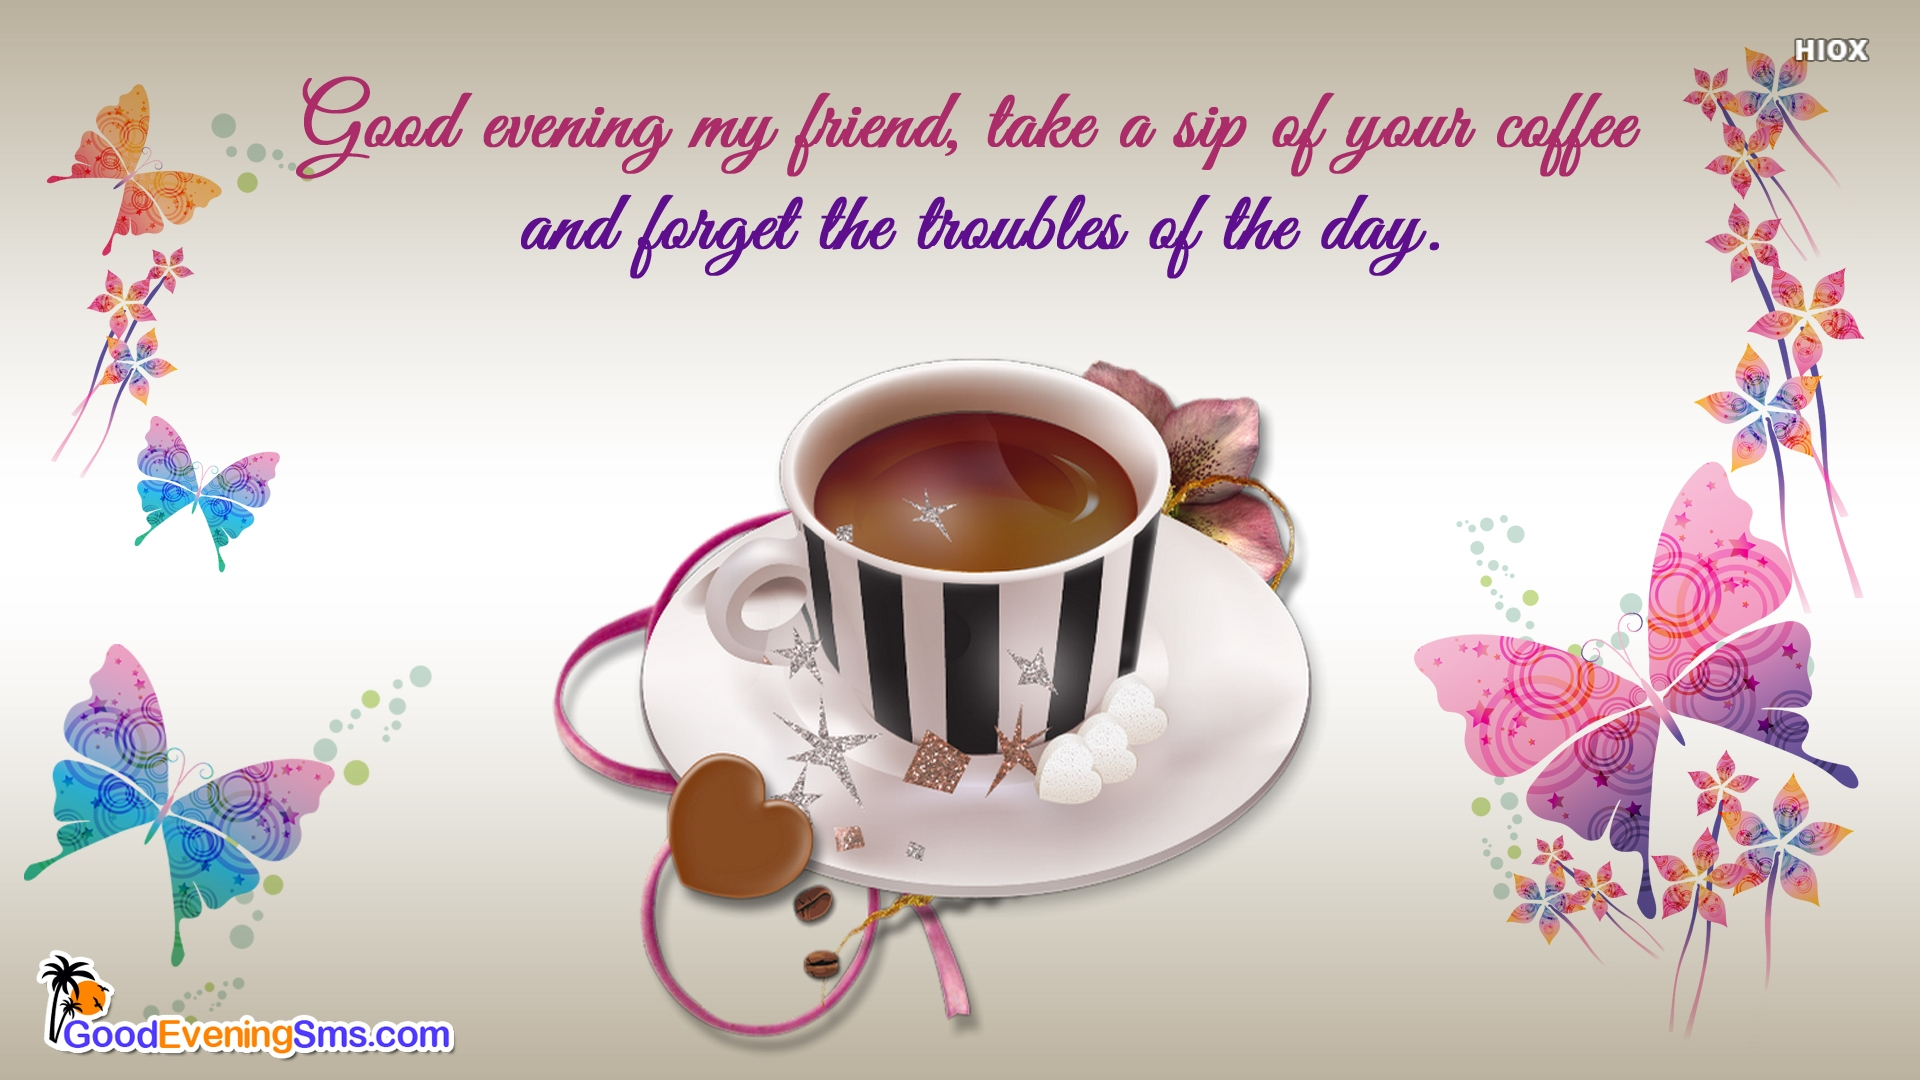 Good Evening My Friend, Take A Sip Of Your Coffee and Forget The Troubles